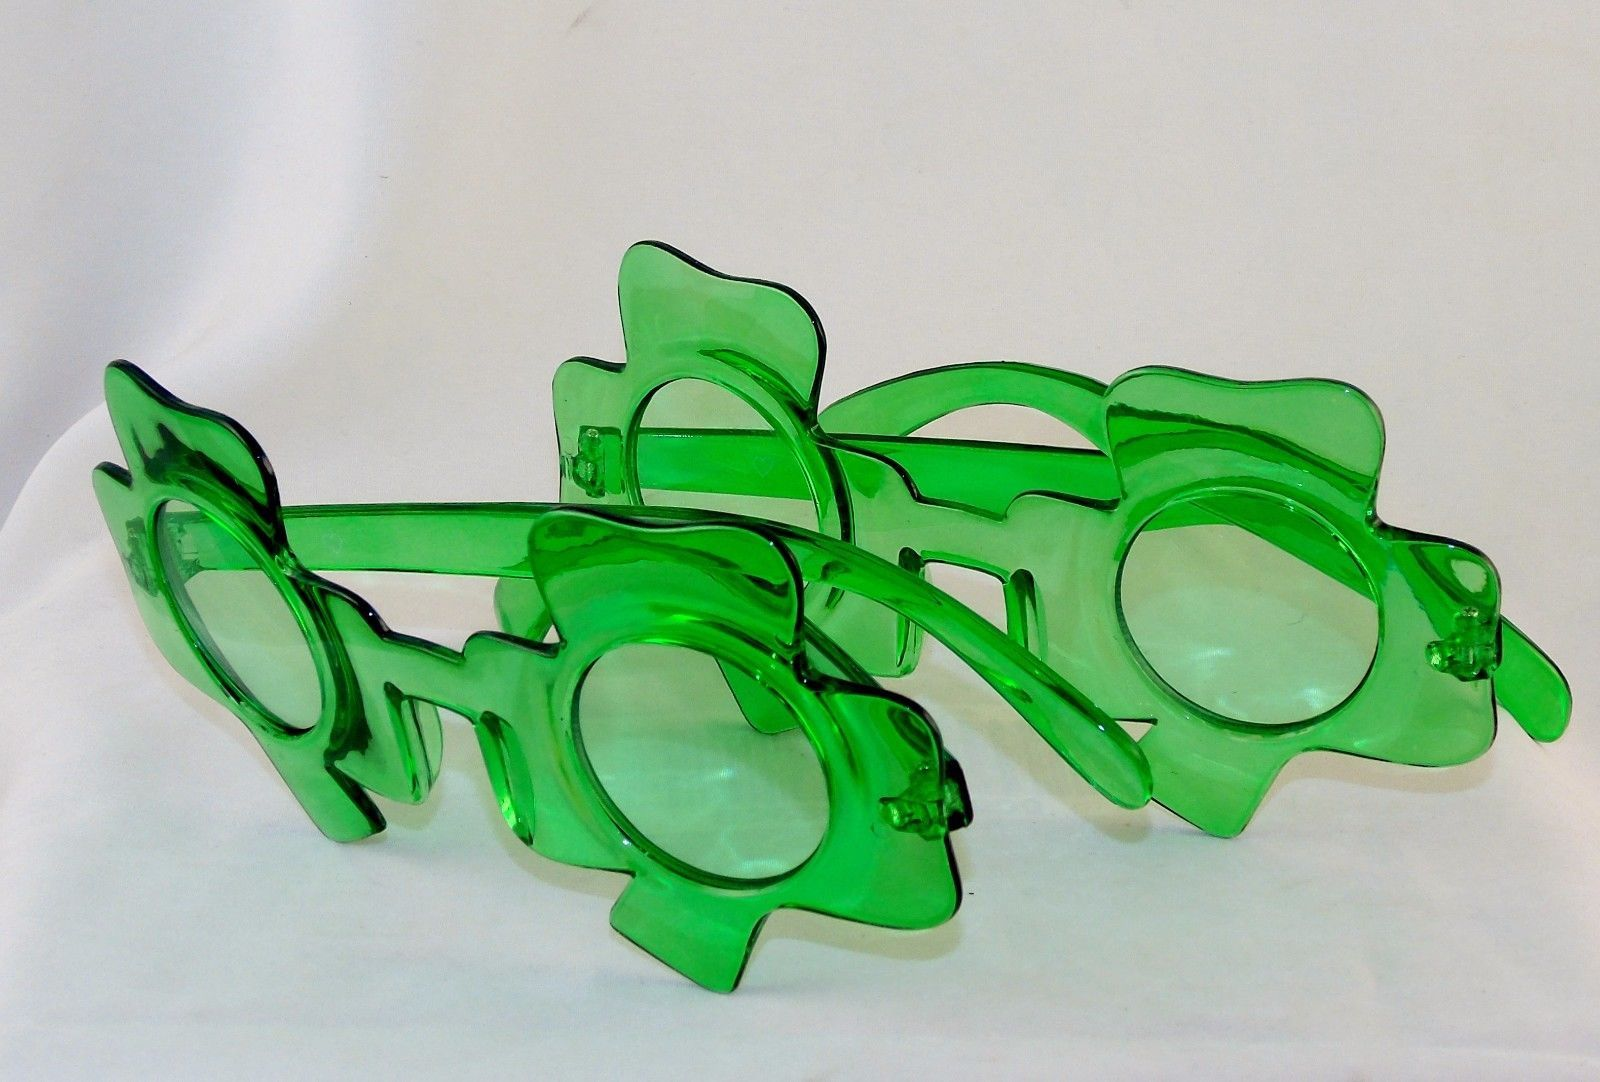 Primary image for 2 Pairs Shamrock Glasses Green Frames & Lenses ~ St. Patrick's Day Party Gear